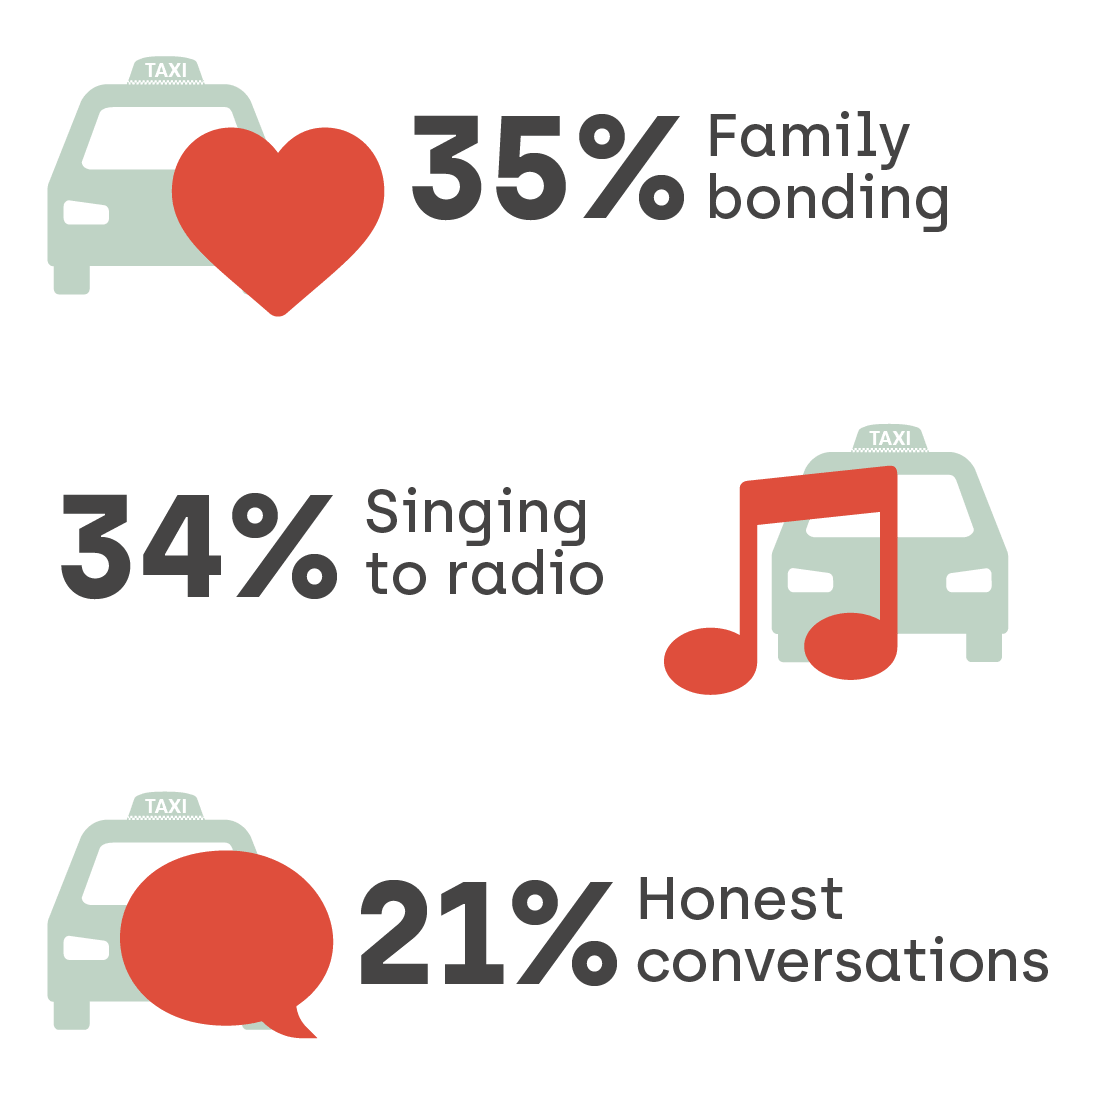 Graphic highlighting what mums value when driving with their children, with 35% citing family bonding, 34% singing to the radio and 21% having an honest conversation.